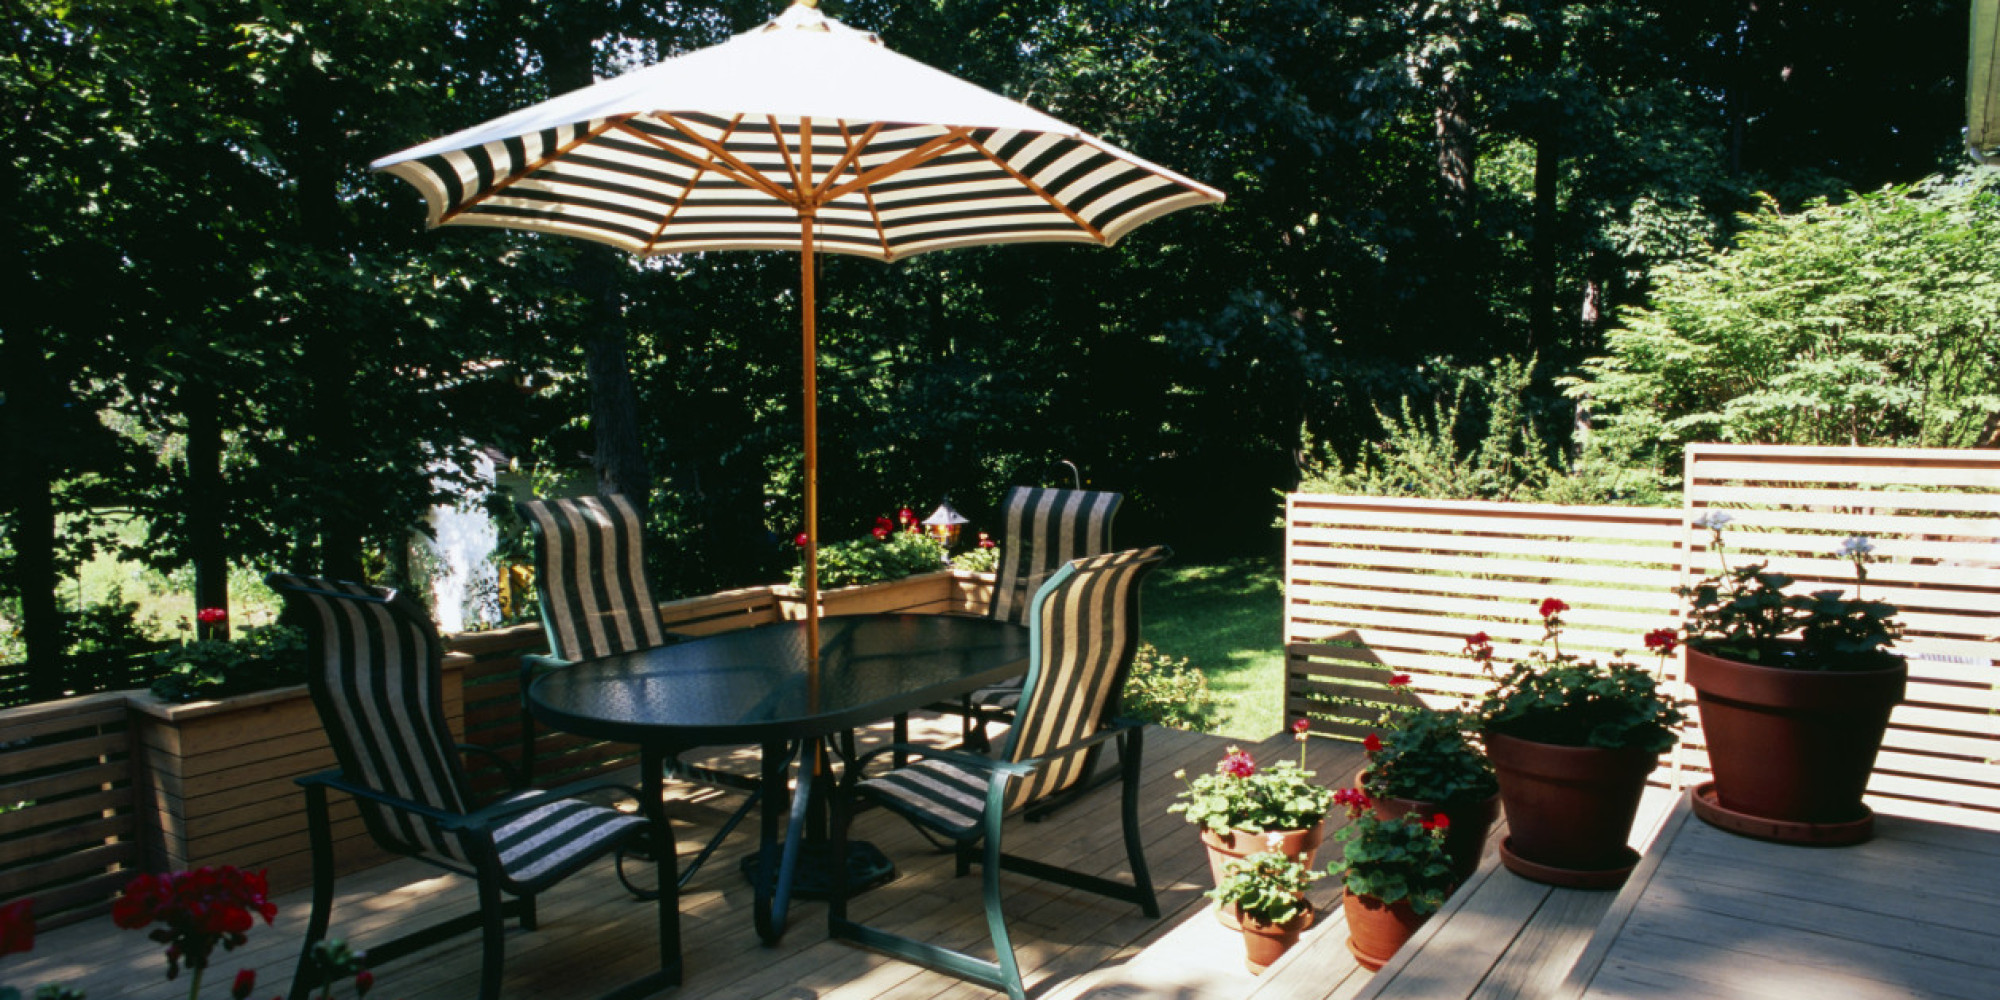 6 Brilliant and Inexpensive Patio Ideas for Small Yards ... on Economical Patio Ideas  id=49269